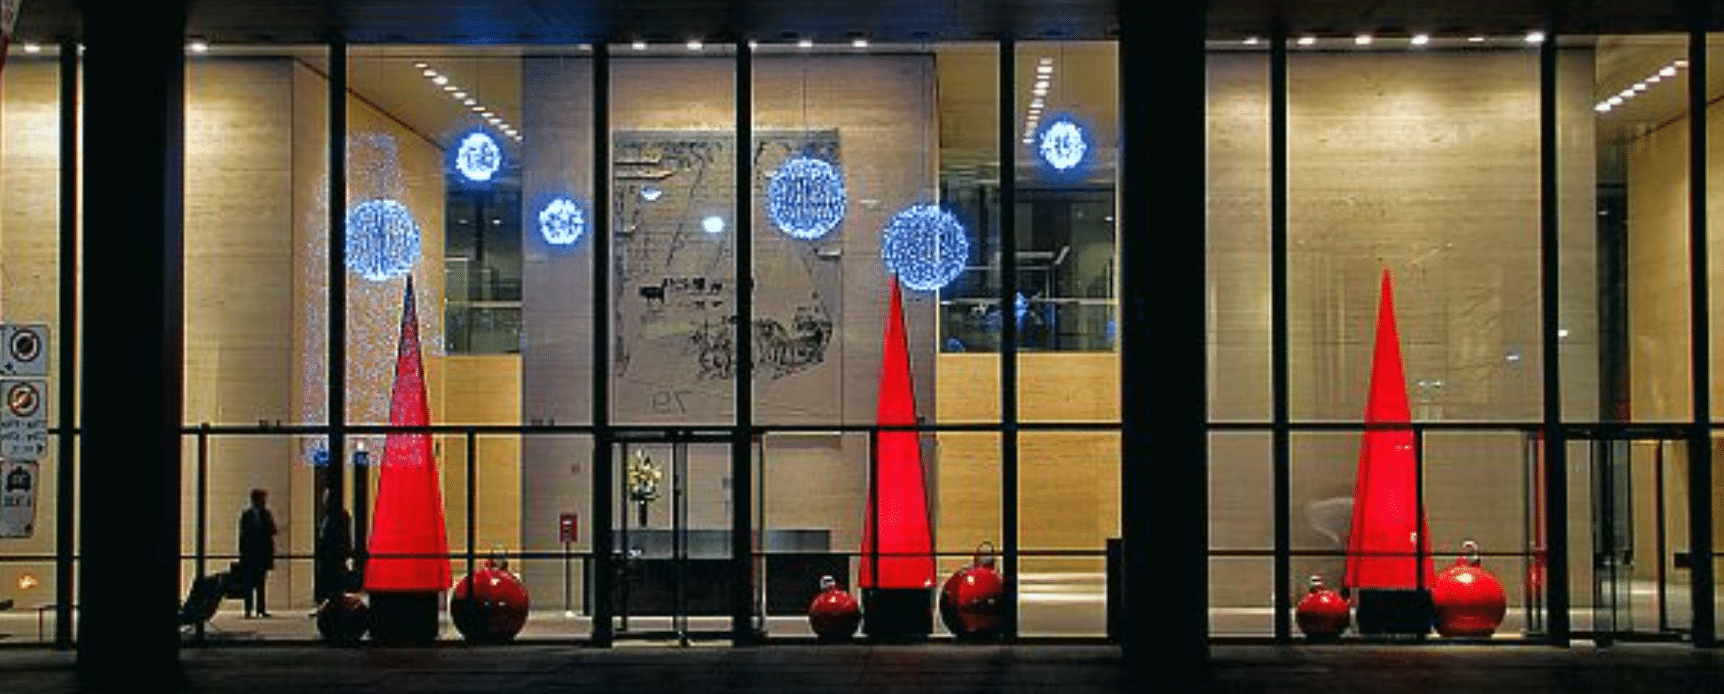 Decorating Businesses For The Holidays